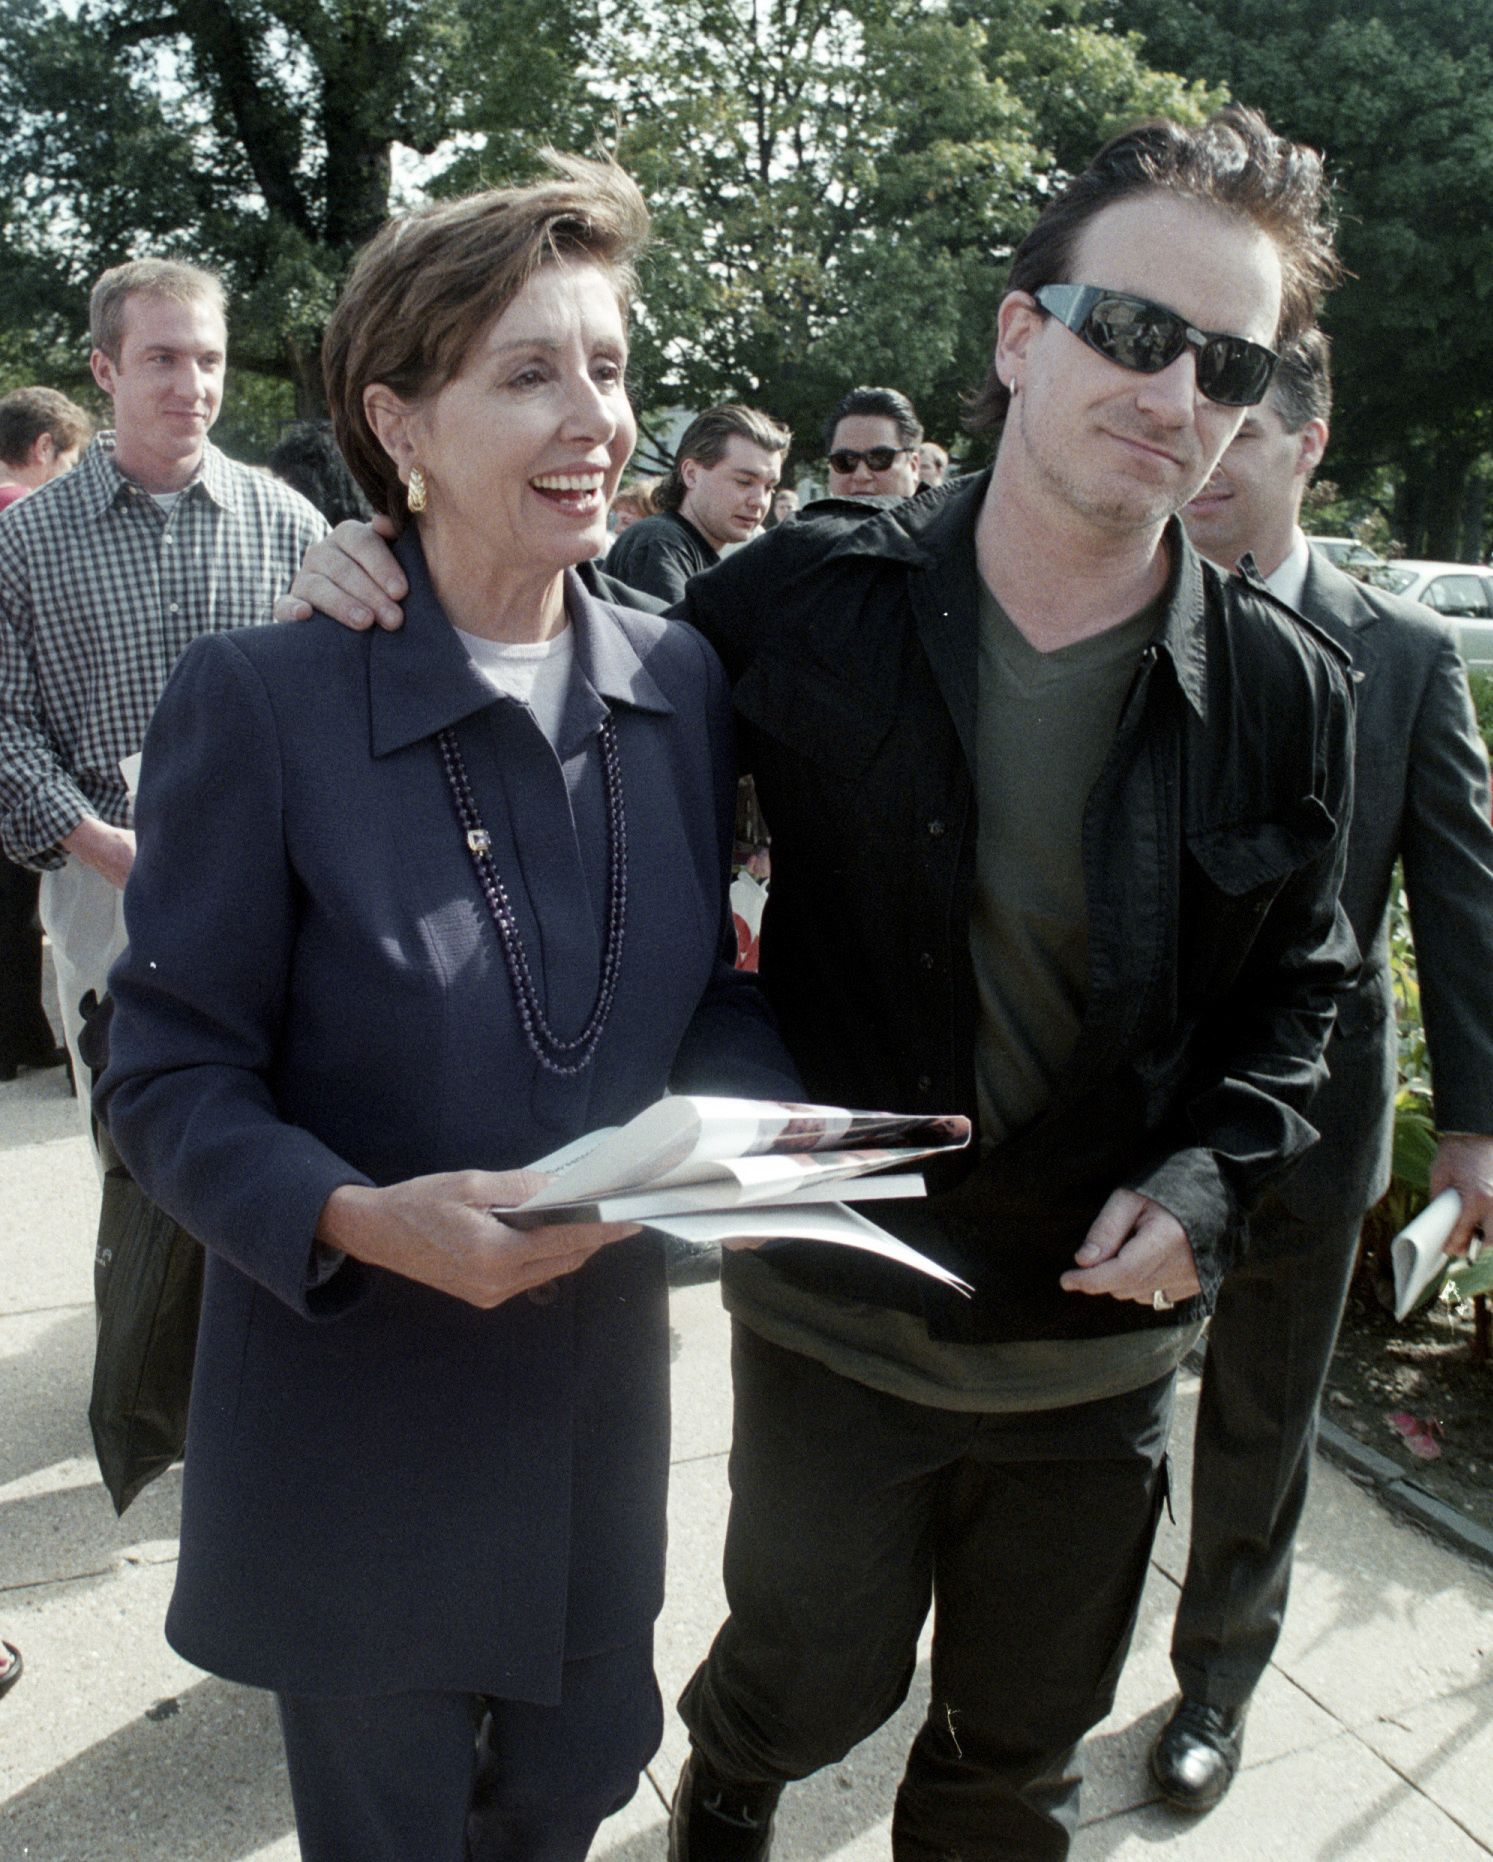 Pelosi and Bono walk around Capitol Hill after a press conference on third world debt relief.